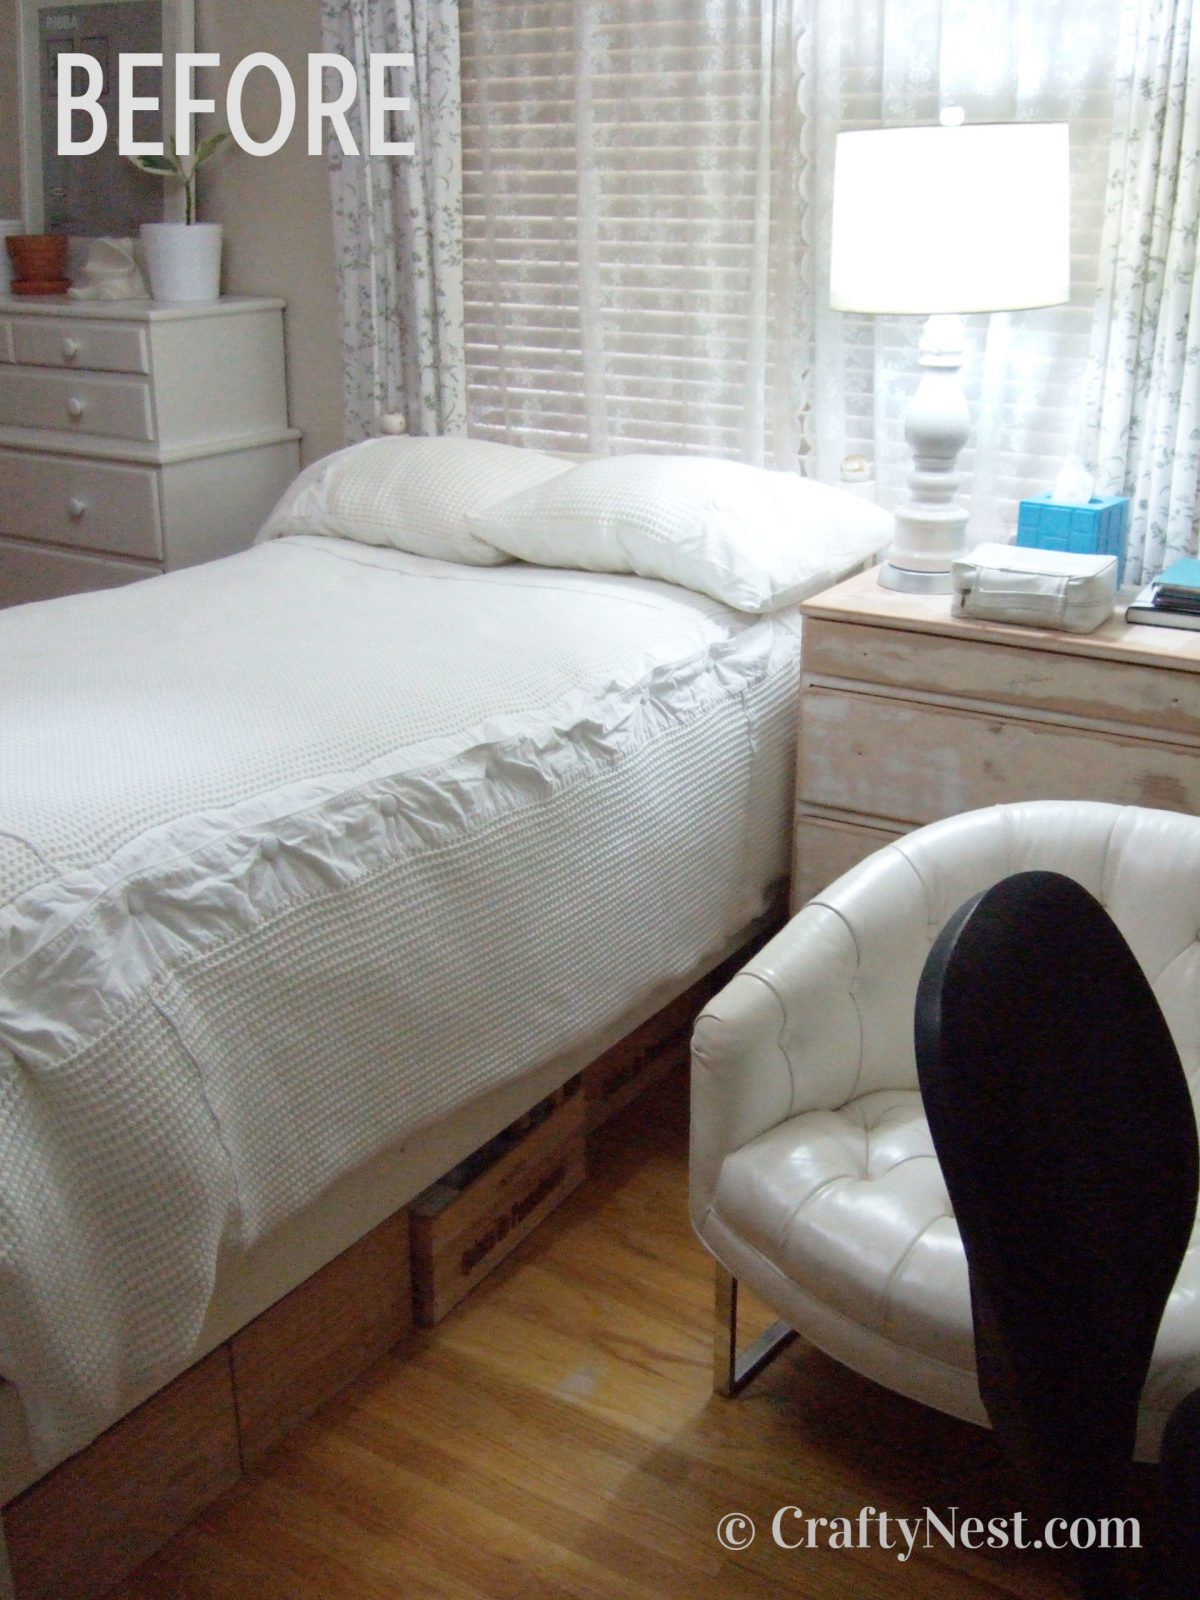 Bed and nightstand, before photo